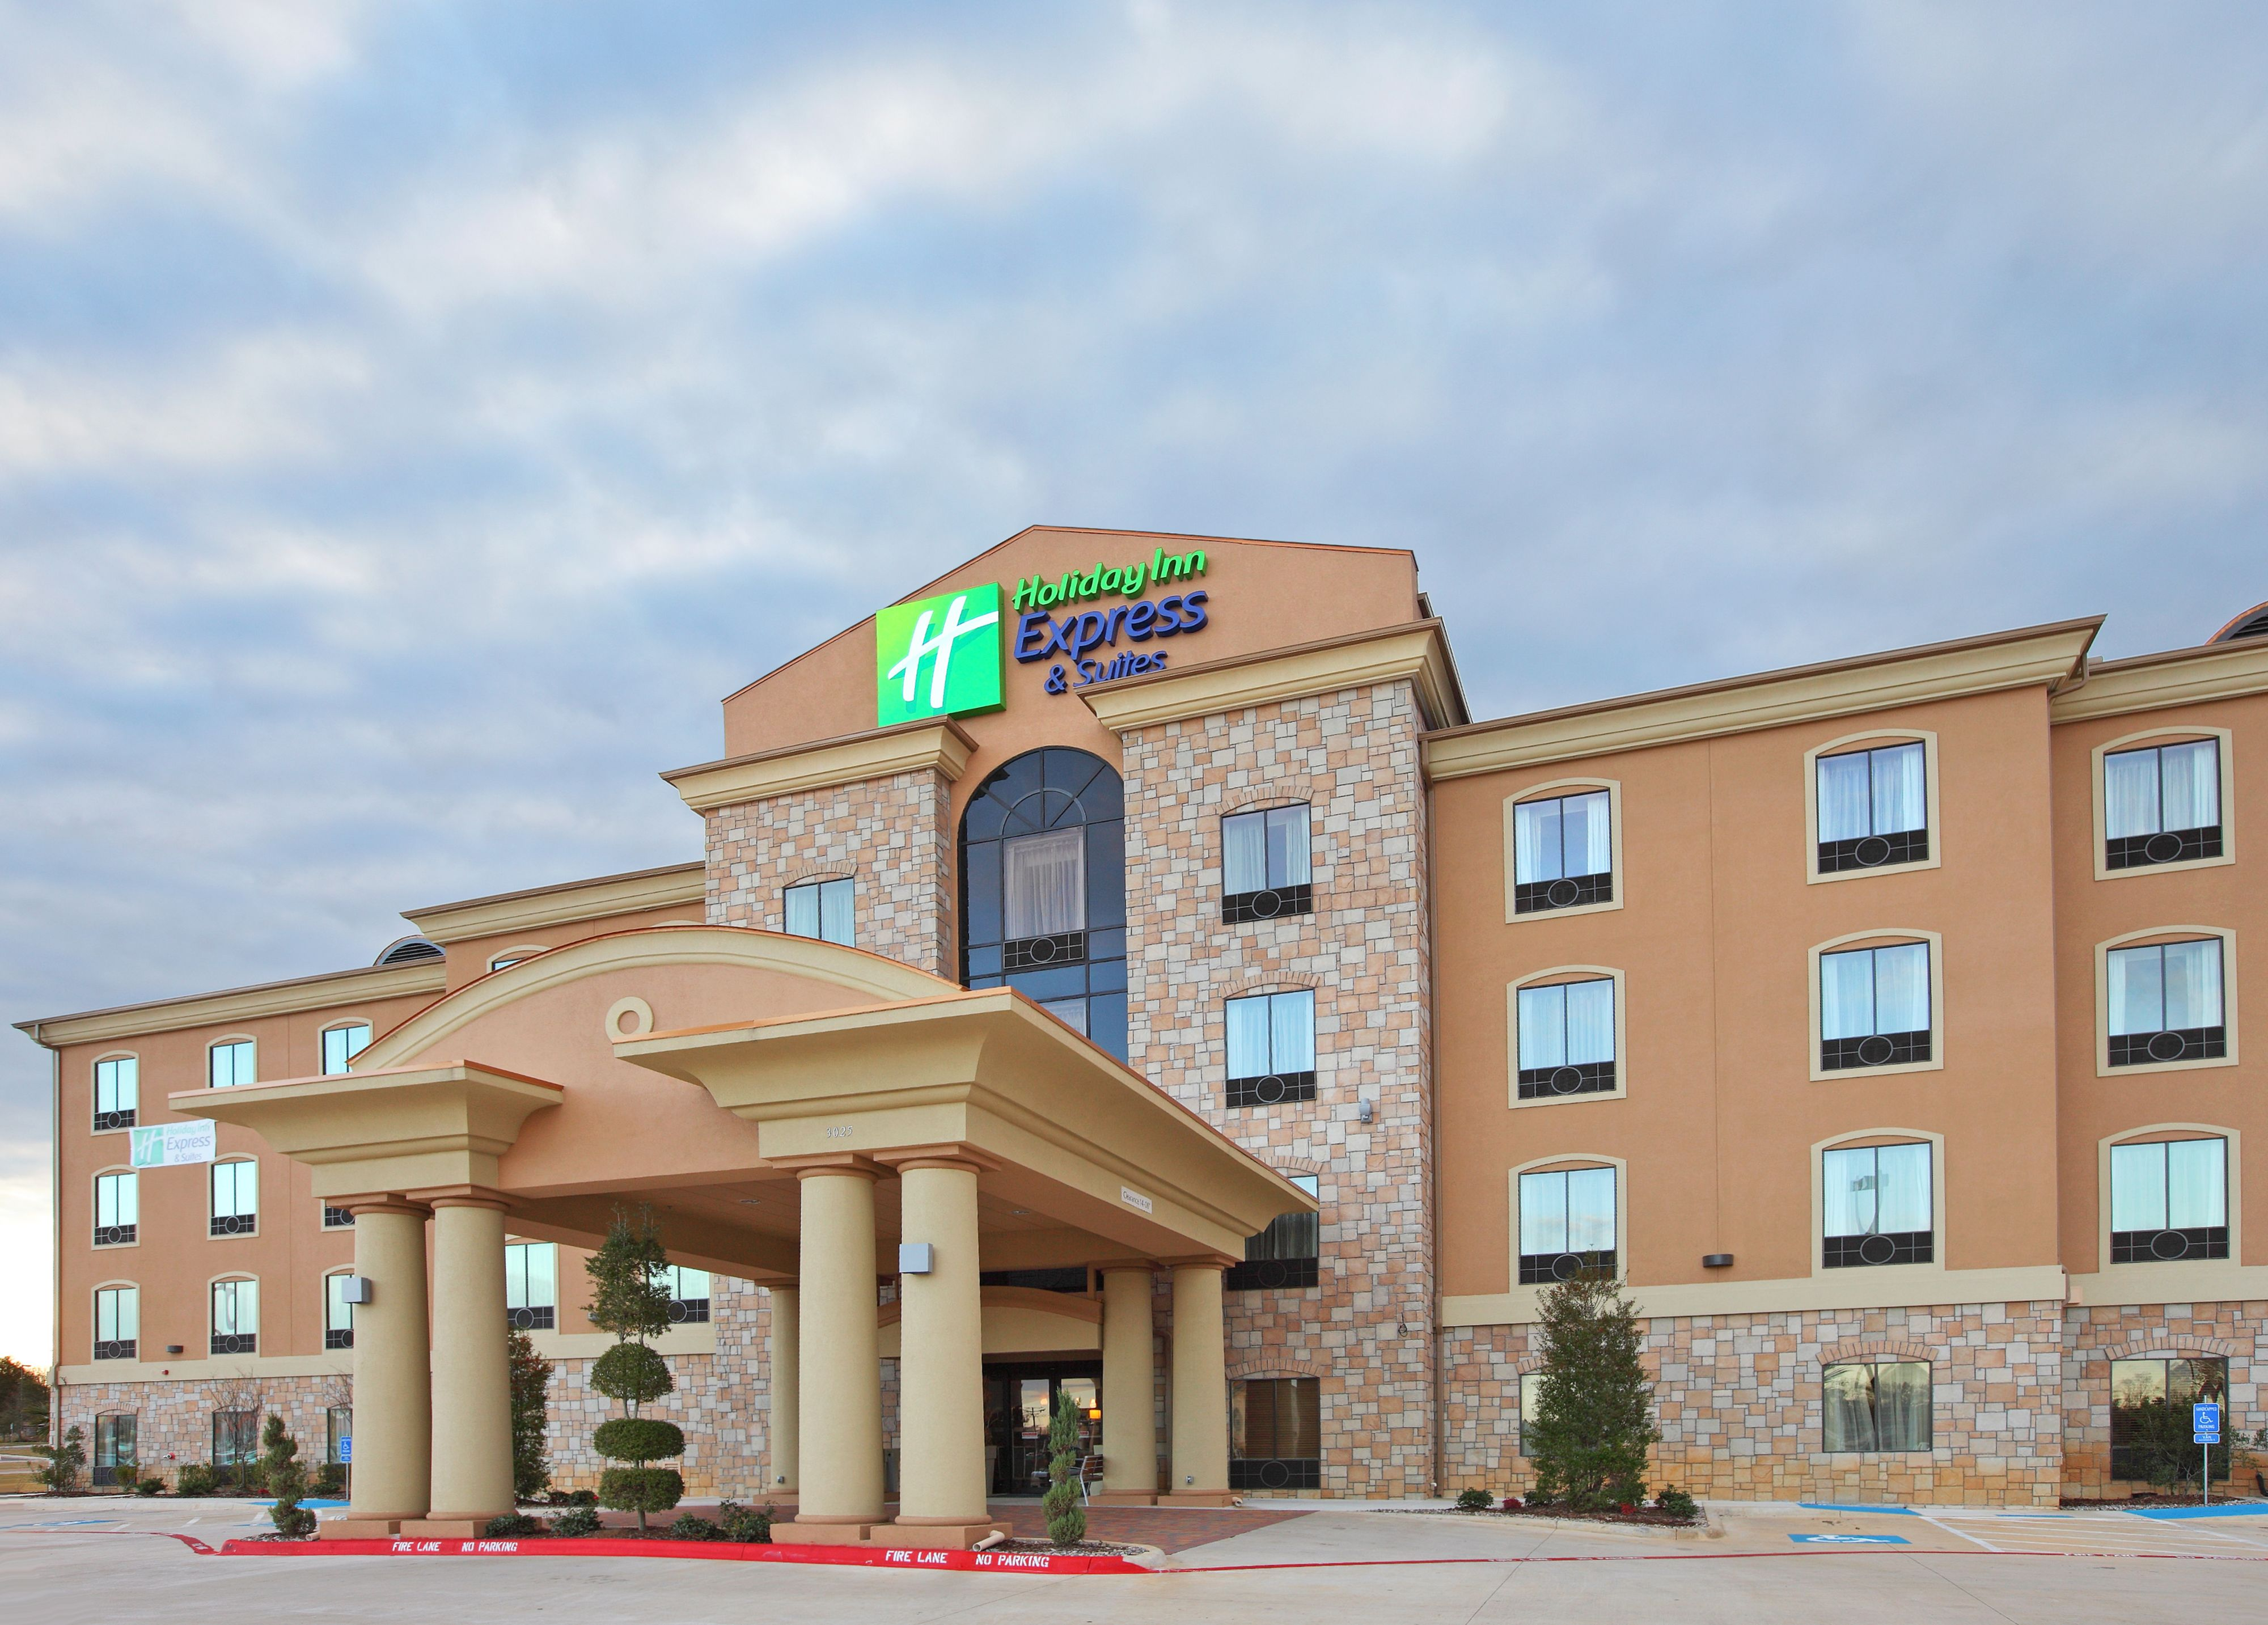 Holiday inn express deals codes